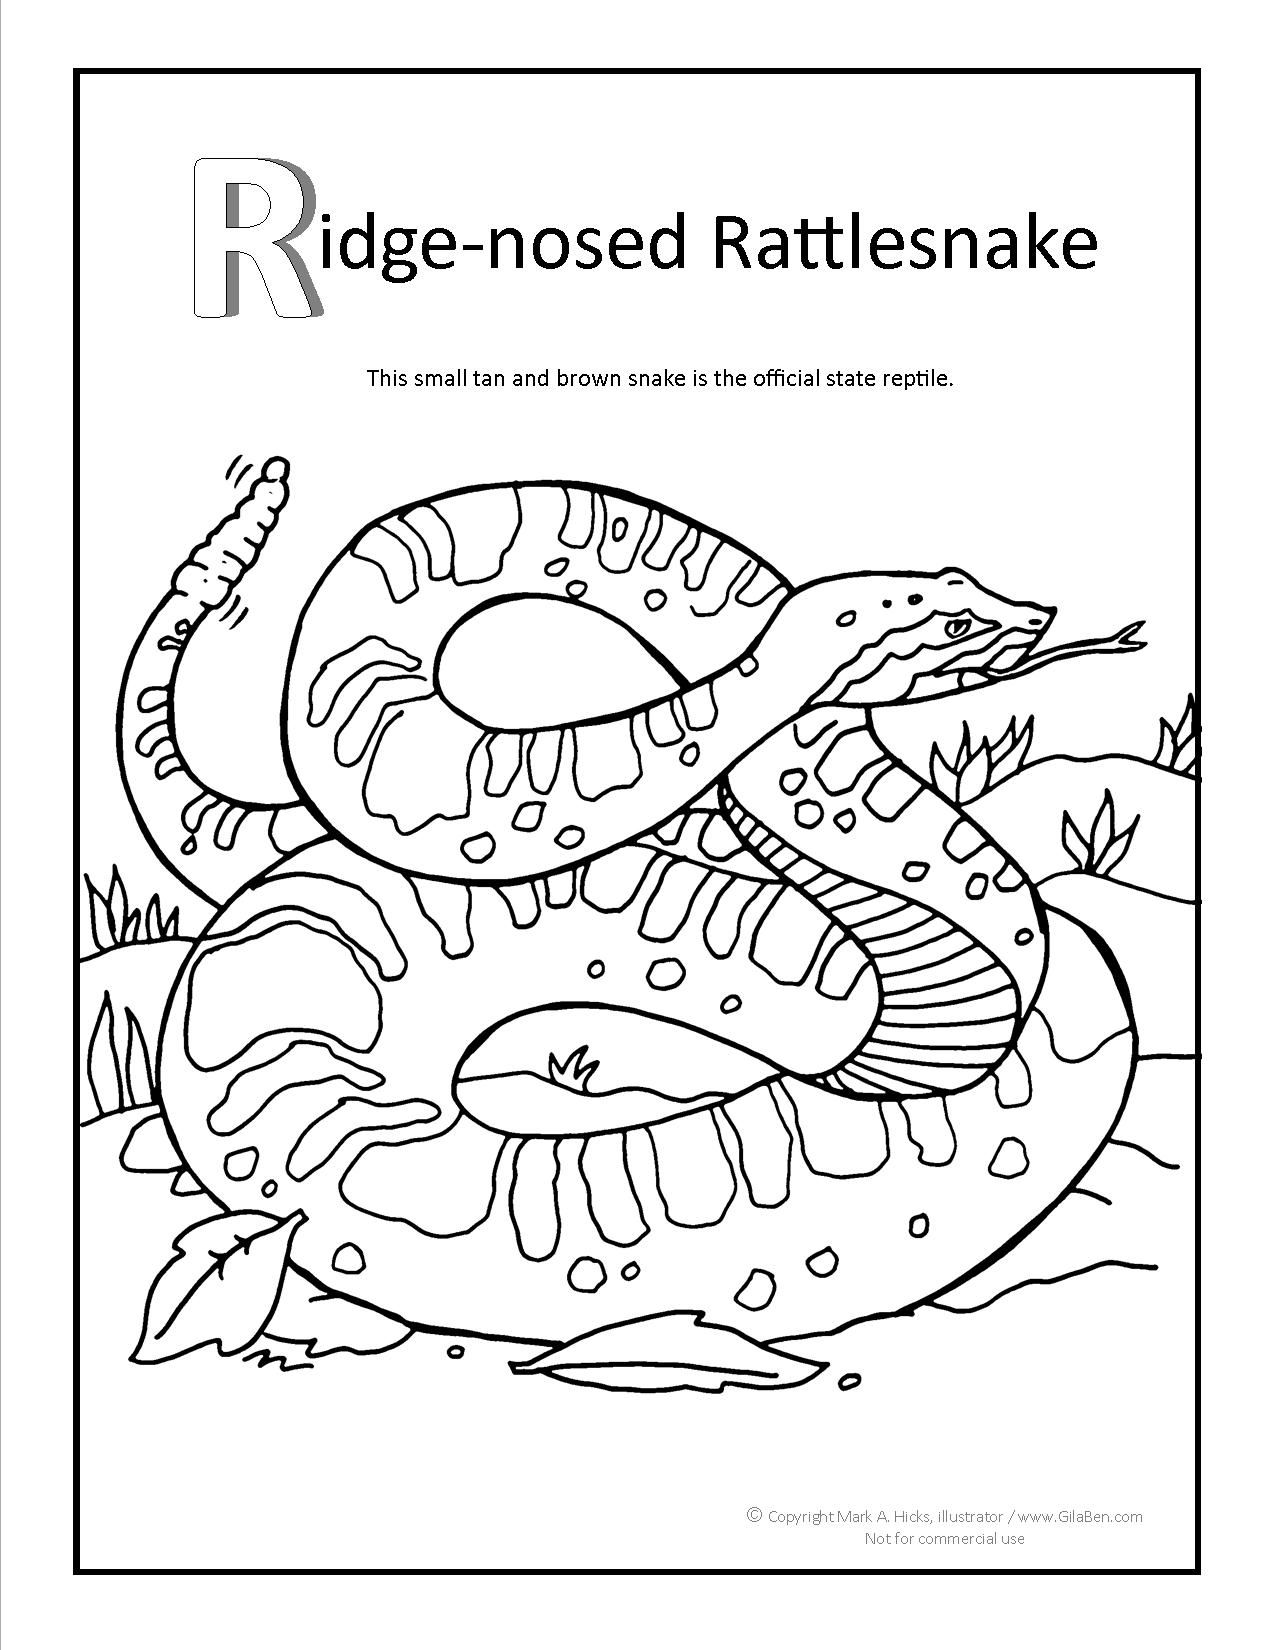 Ridge Nosed Rattlesnake Coloring Page At Gilaben